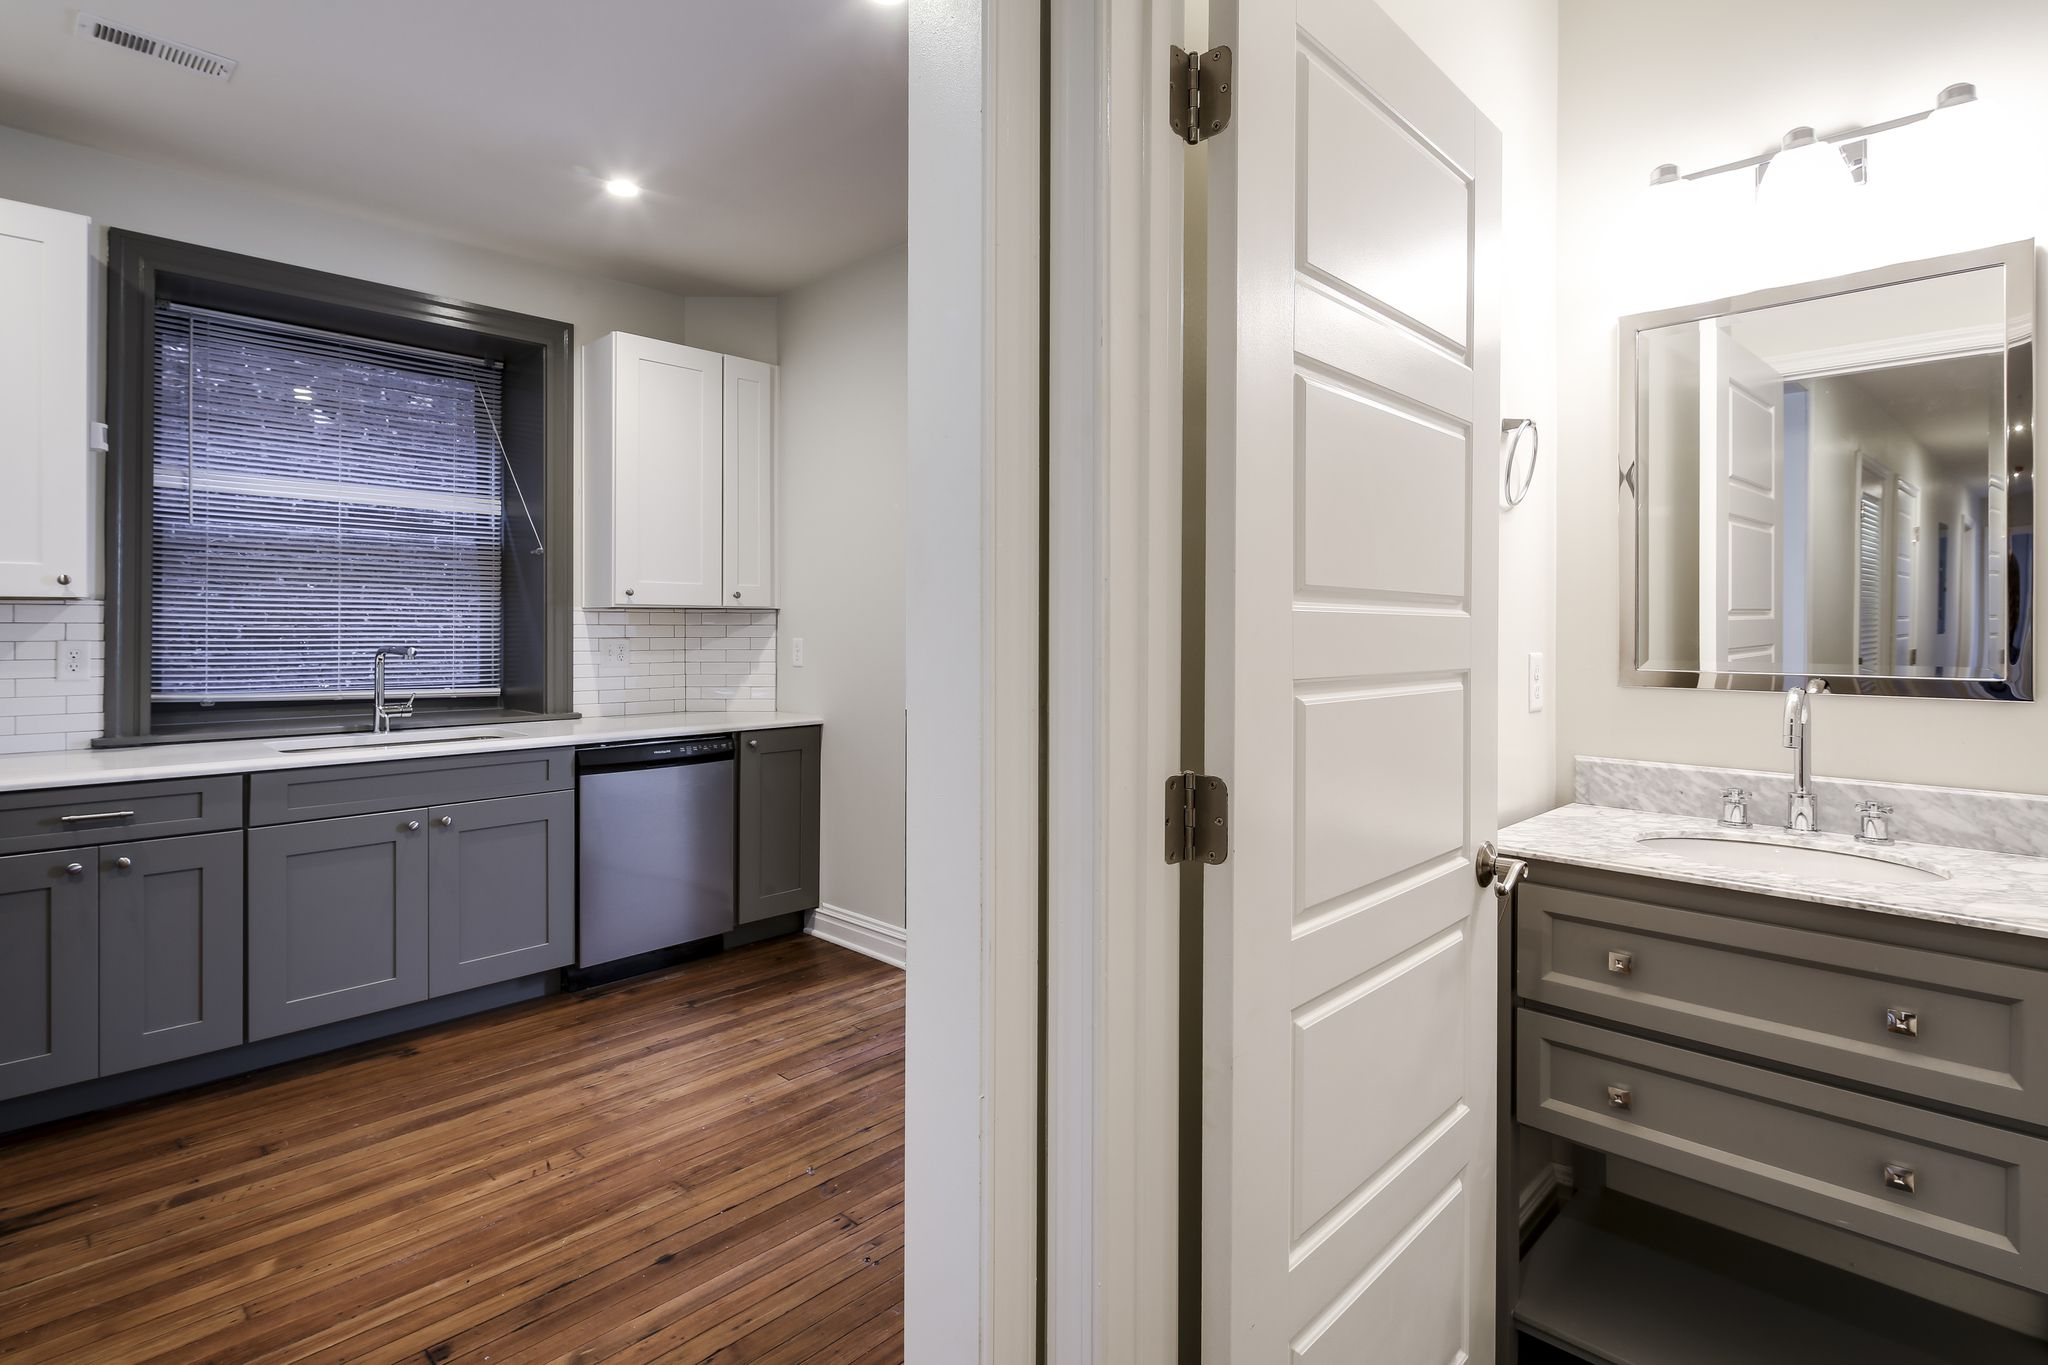 Kitchen And Bath Cabinets By KBC Direct   Over 25,000 Installed Kitchens In  The Baltimore And